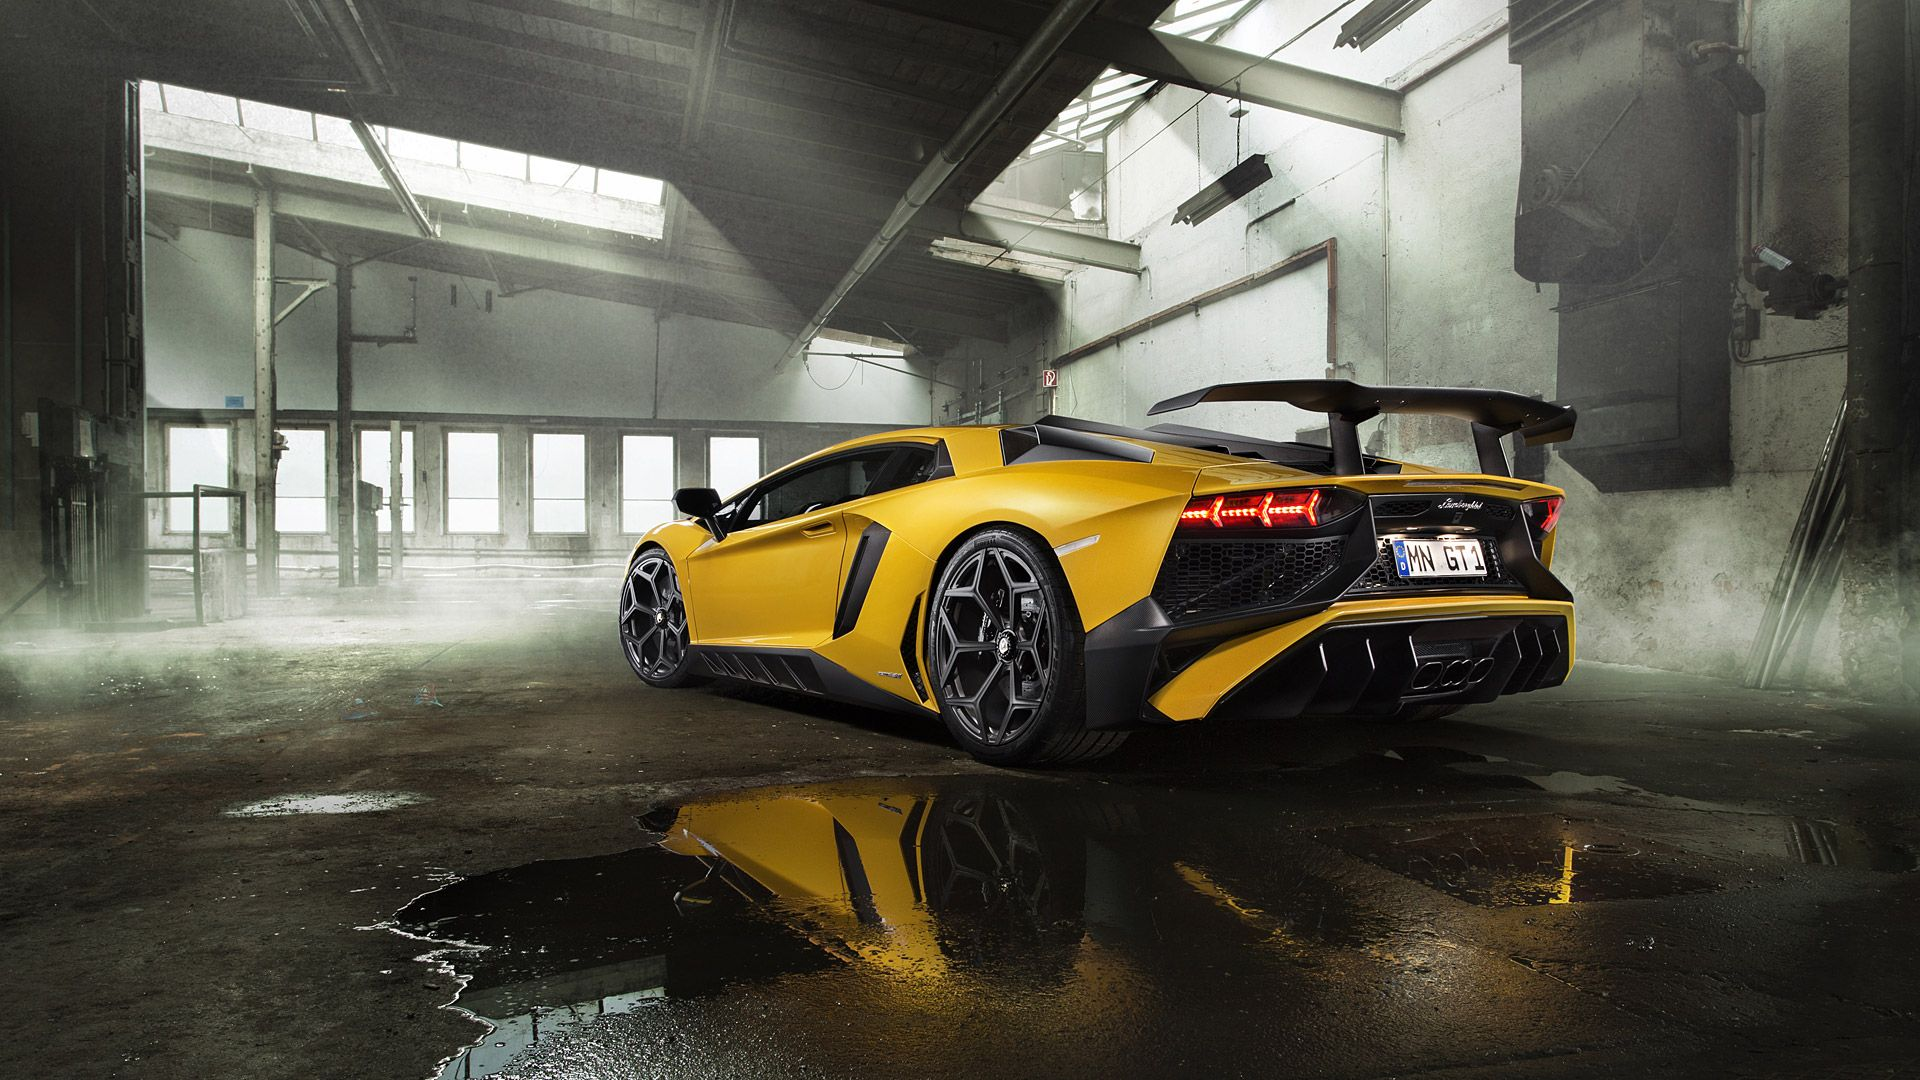 Lamborghini Aventador Sv Wallpapers Top Free Lamborghini